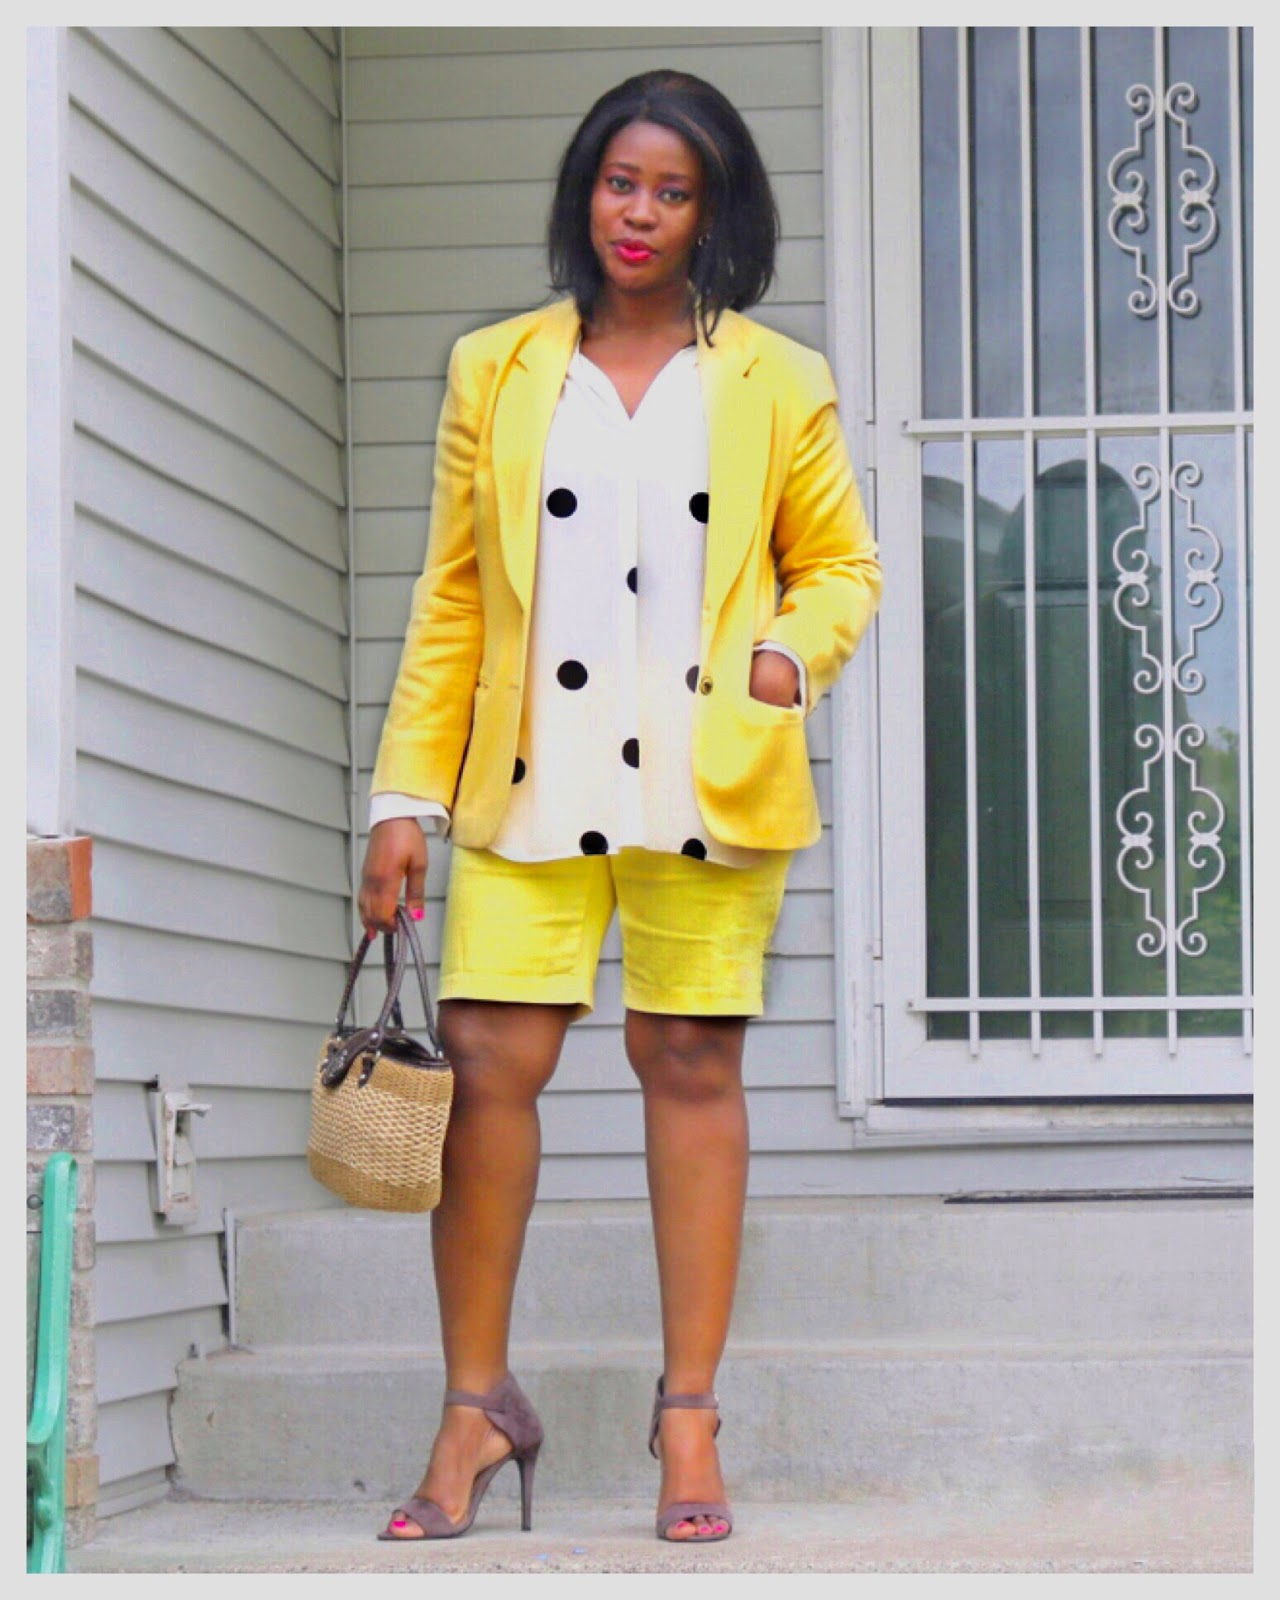 Beauty's Fashion Zone: Yellow Shorts Suit + Polka Dots